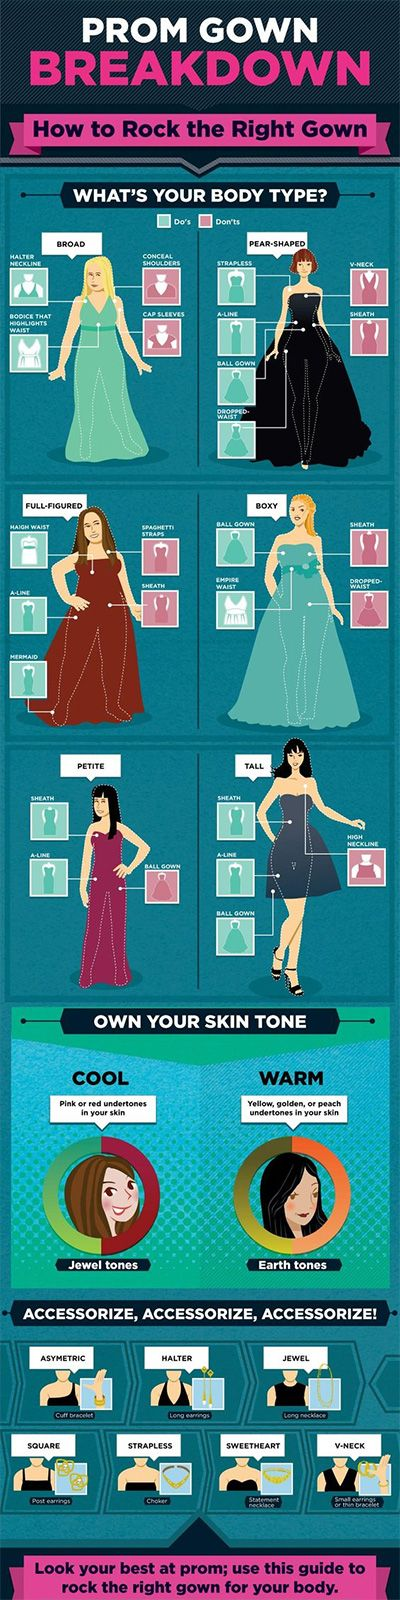 prom dresses for teens (hacks, tips and tricks to find the perfect dress)